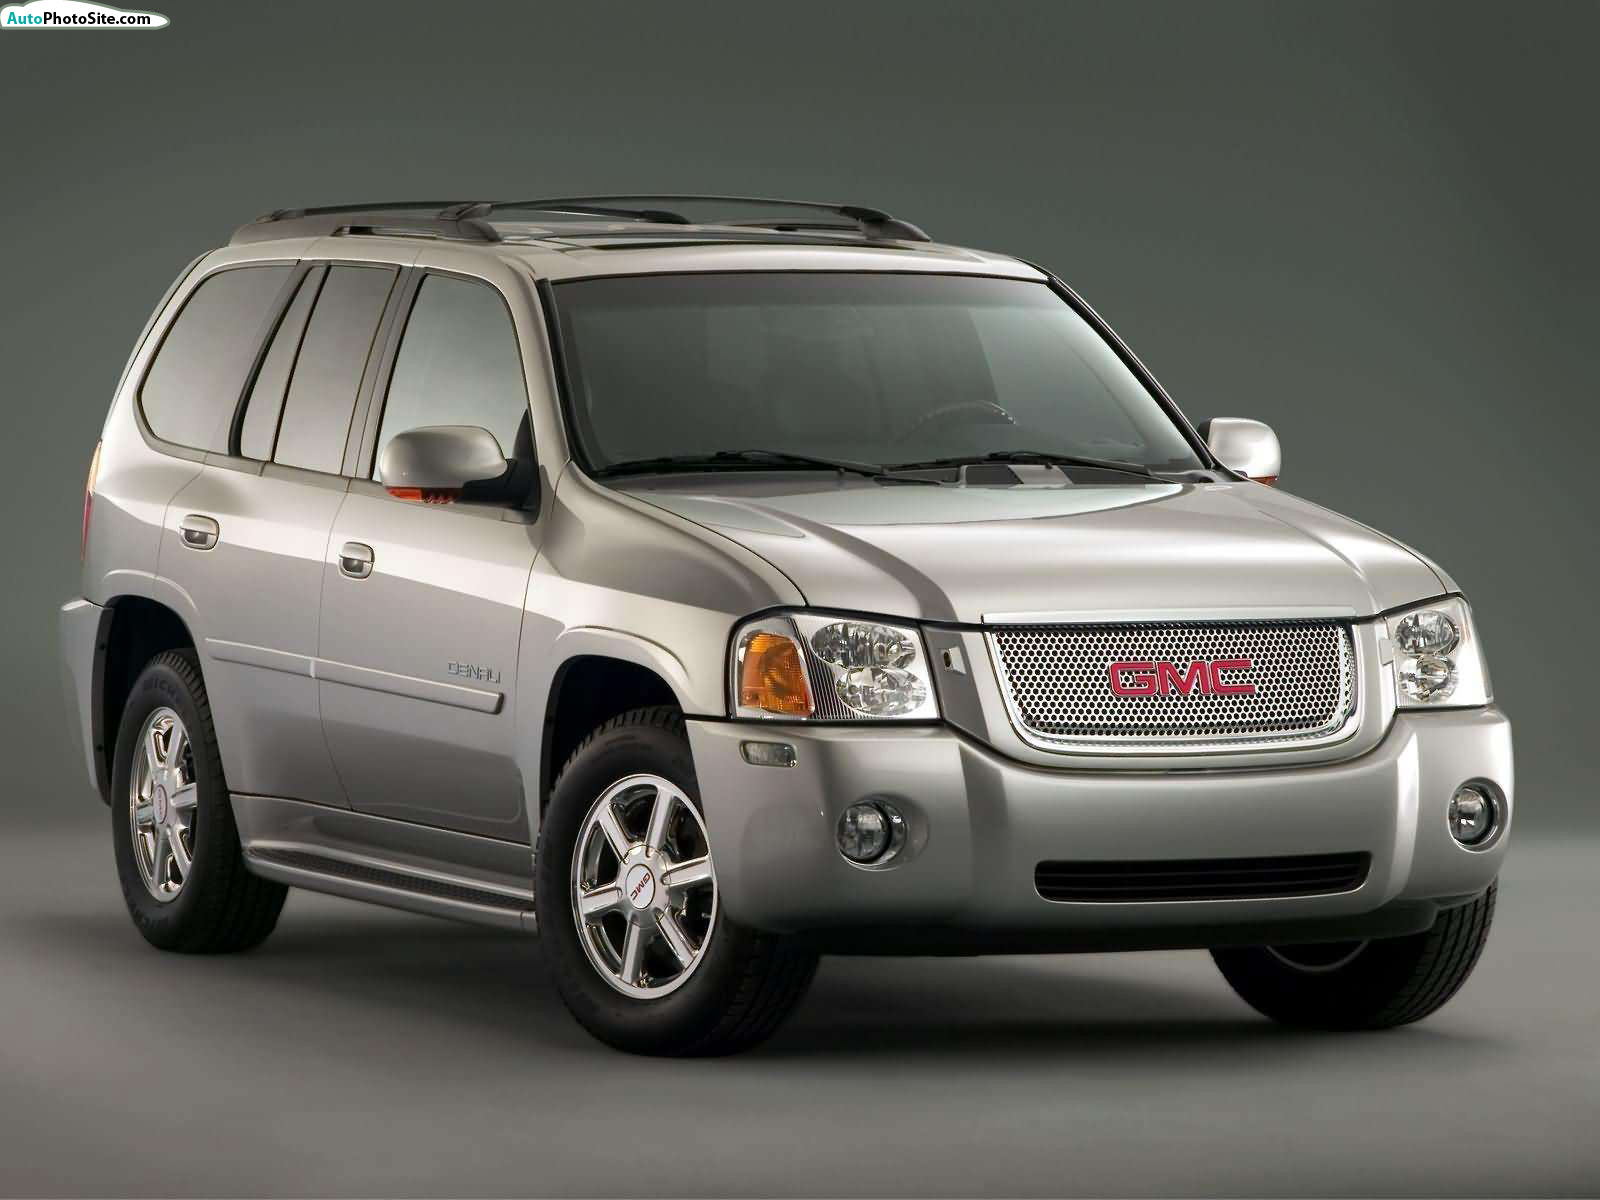 You Might Like : GMC Terrain Compact SUV Family - Trucks, Vans, SUVs and